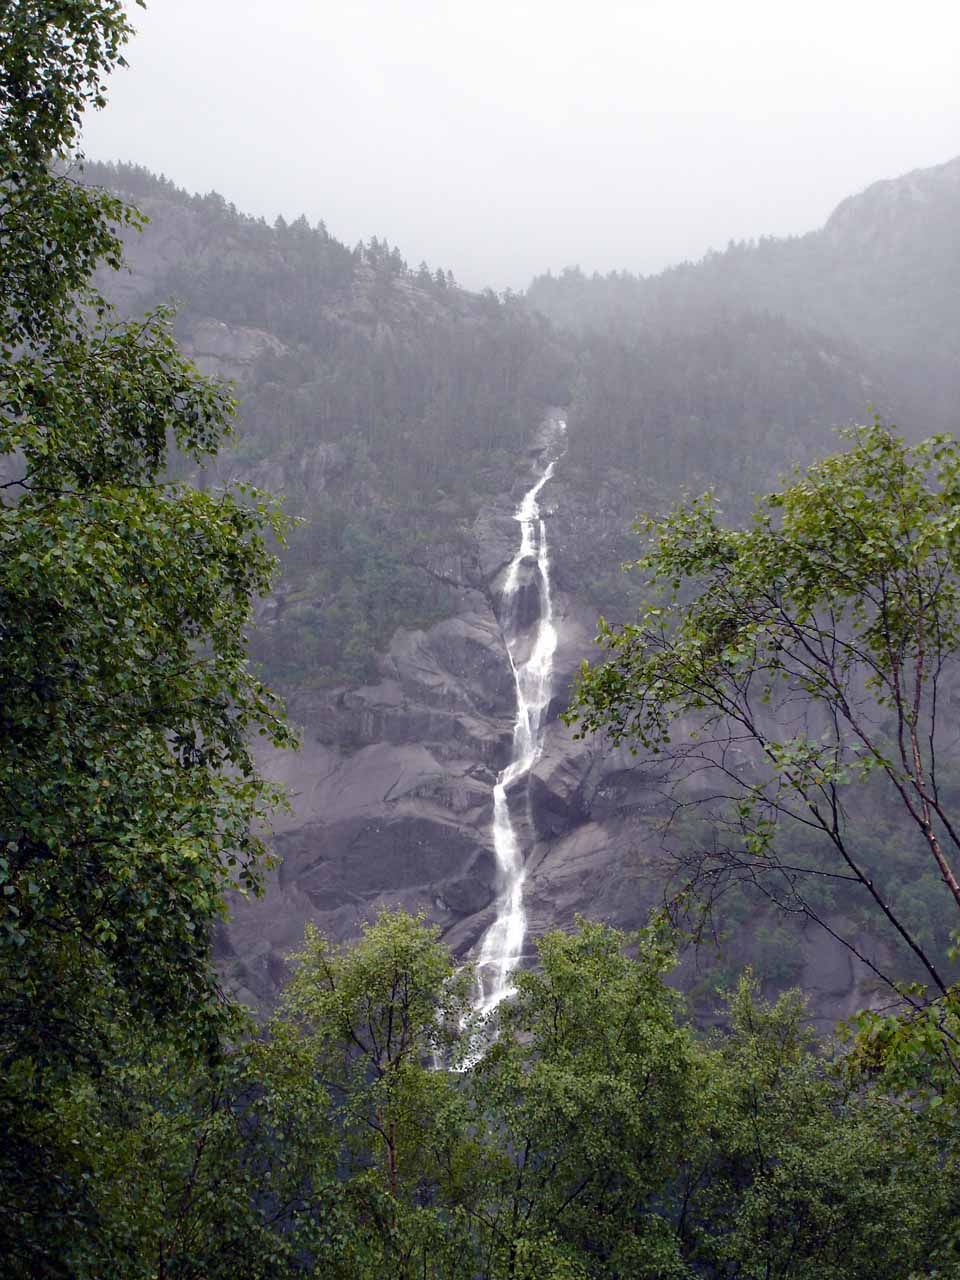 Direct view of one of the taller waterfalls seen along Rv520